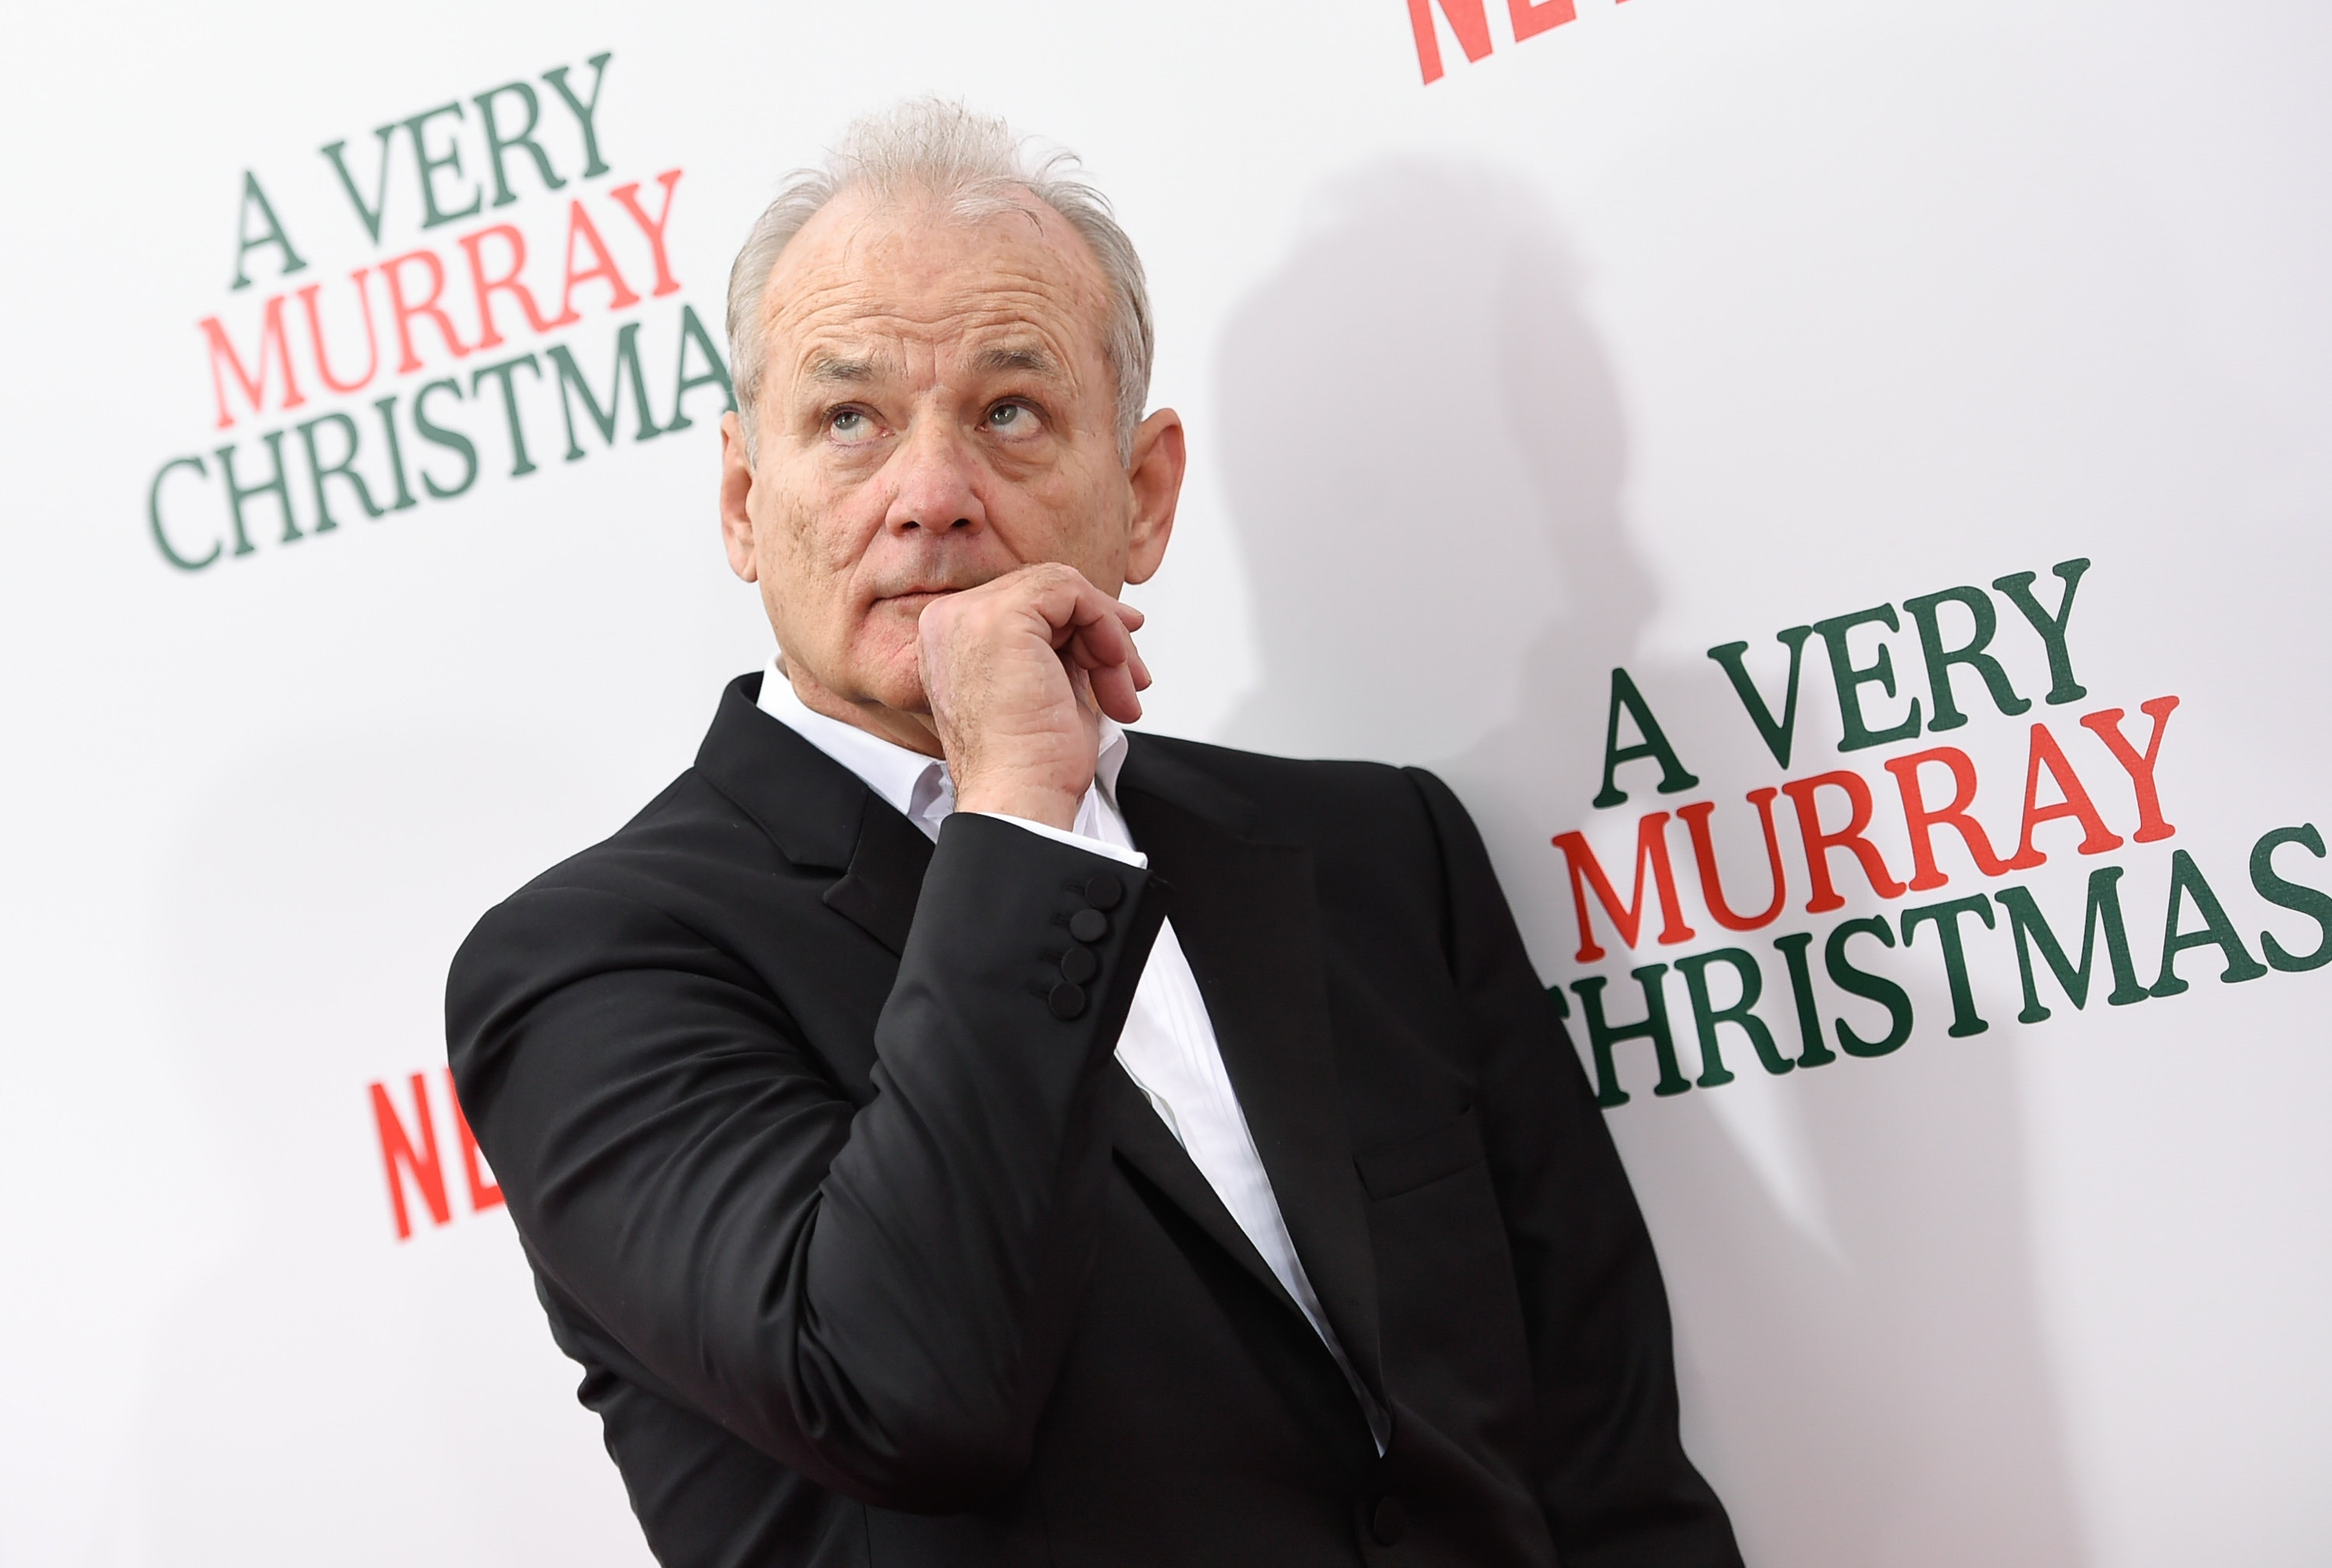 A Very Murray Christmas.A Very Murray Christmas Netflix Cast Trailer And How To